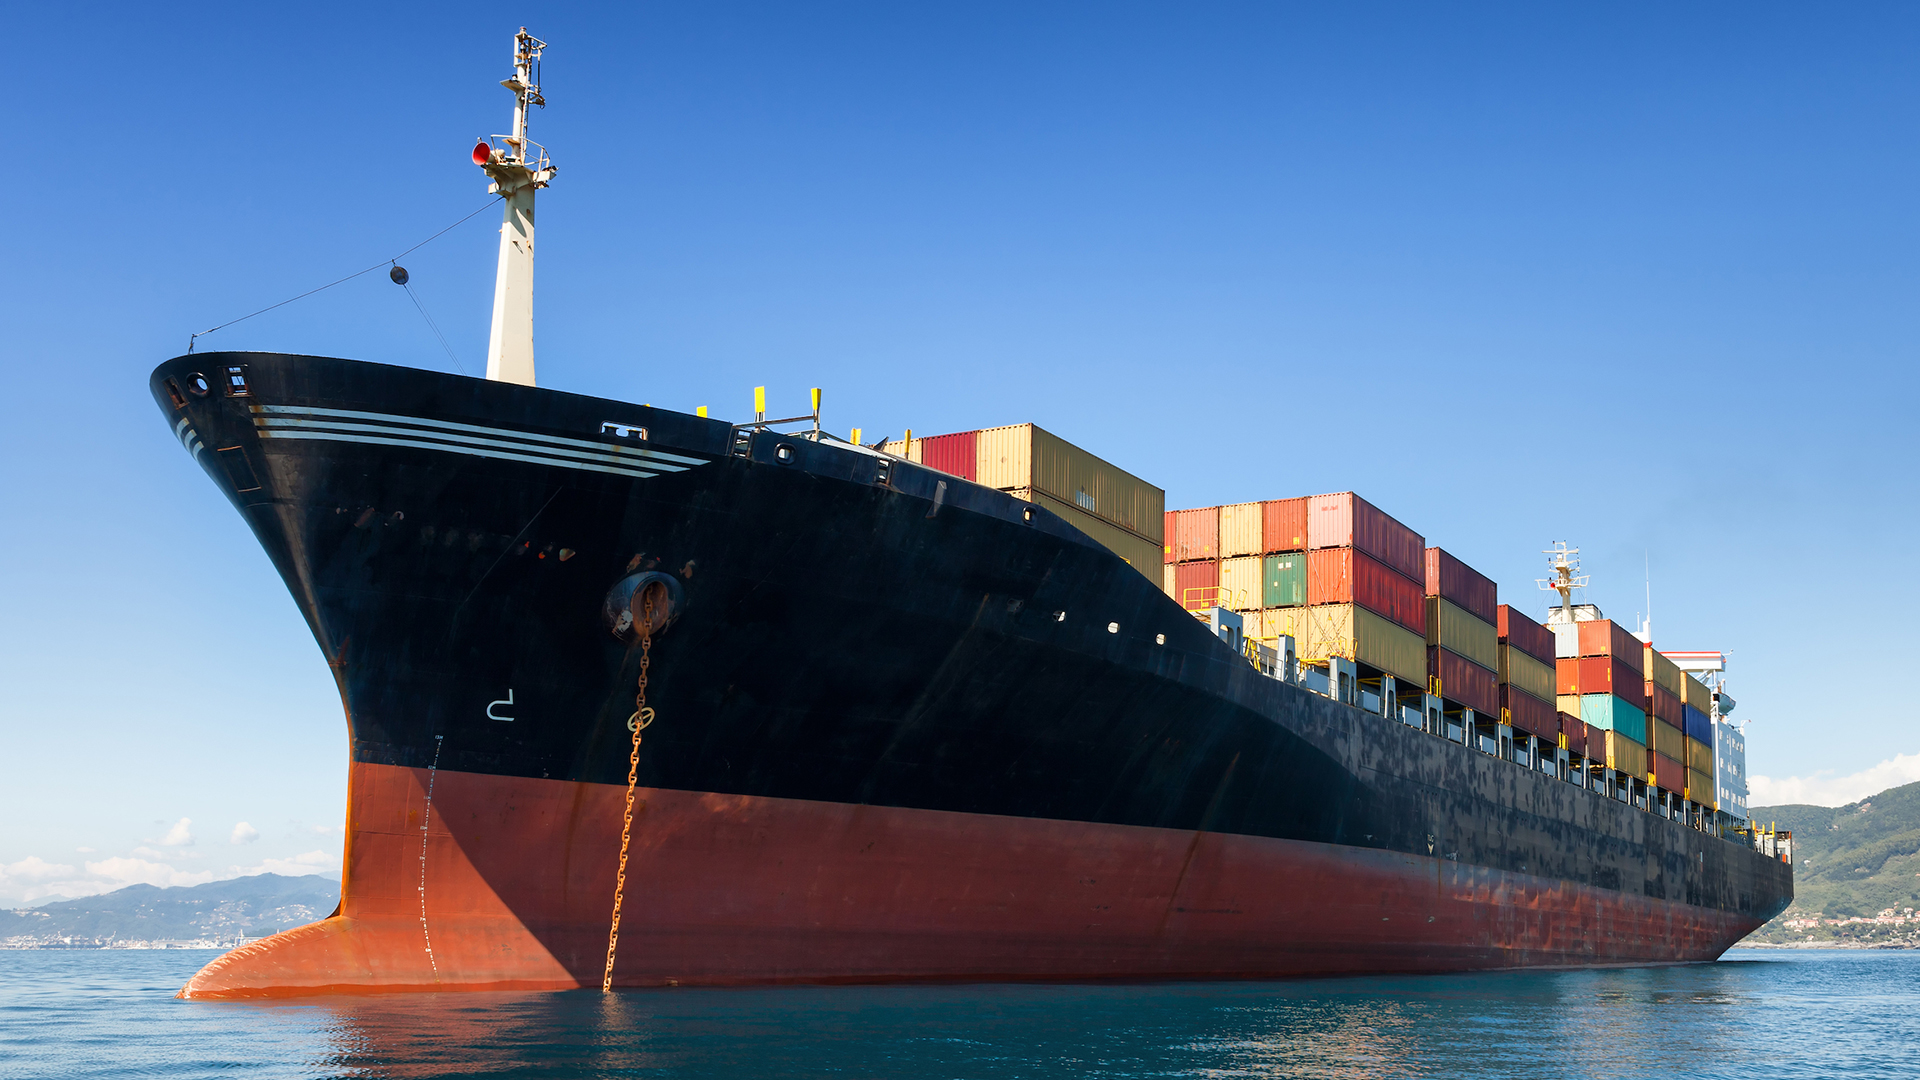 The proposed inclusion of the shipping industry in EU ETS